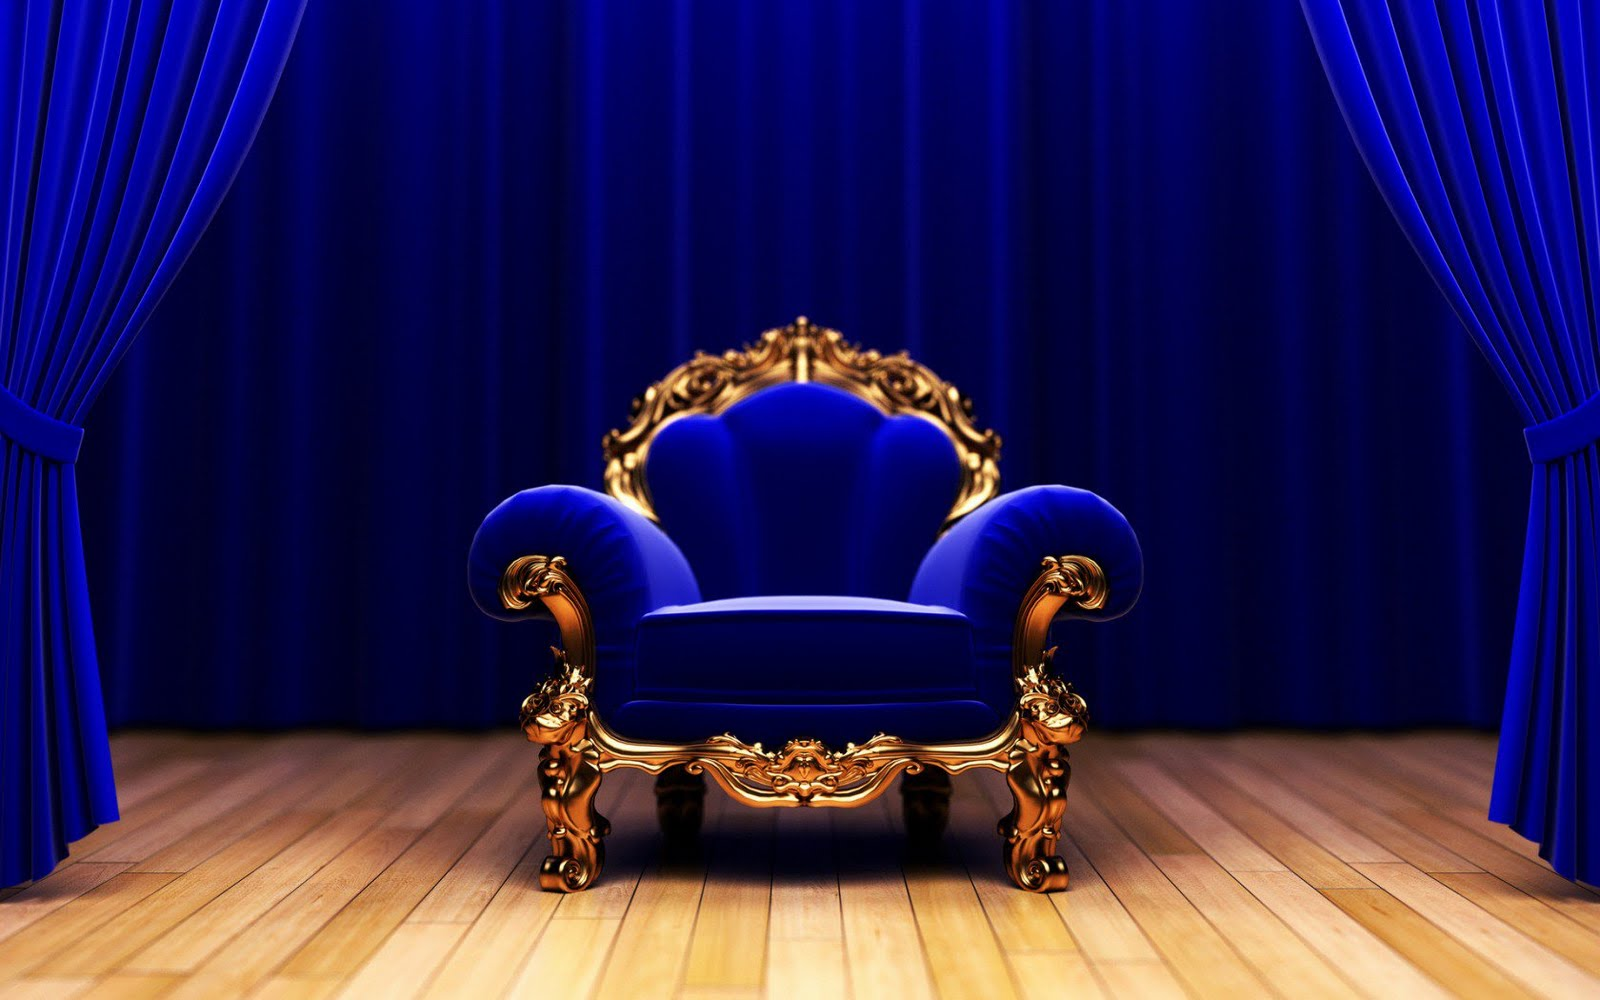 the royal chair mhhh dont you wish it could be you seating on it 1600x1000